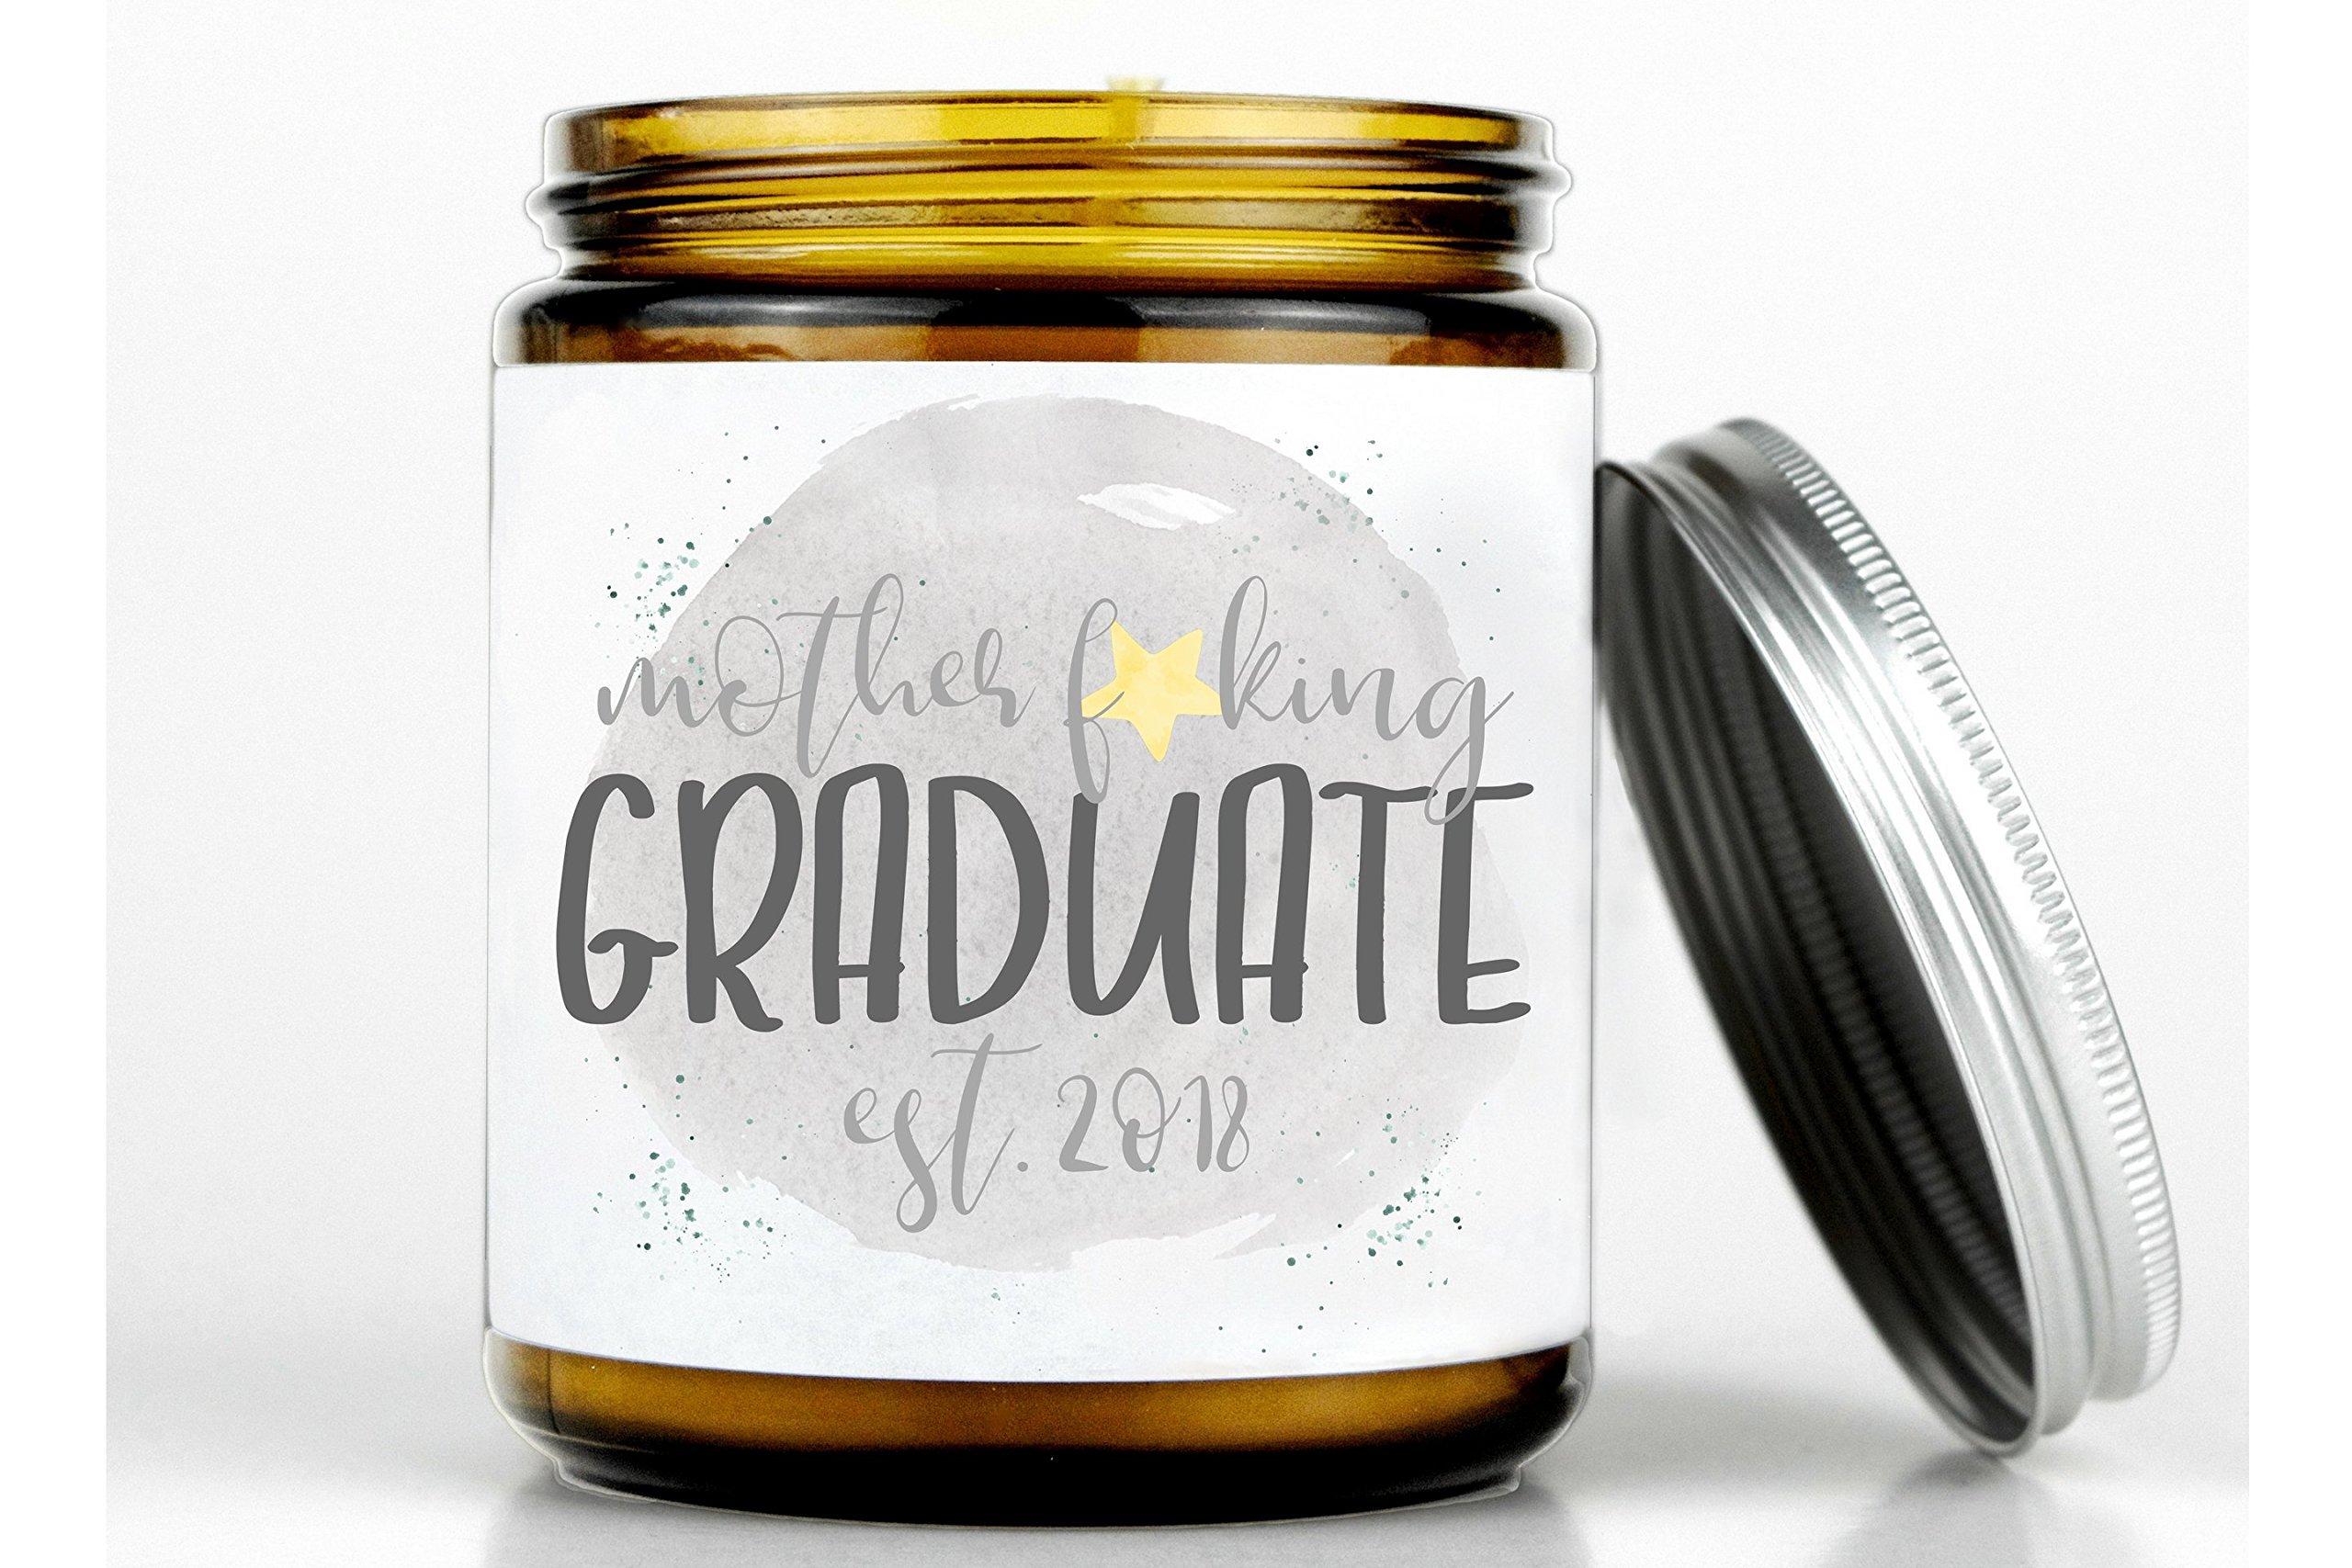 Mother fcking graduate established 2018 candle, graduation gift, college graduate, school graduation gift